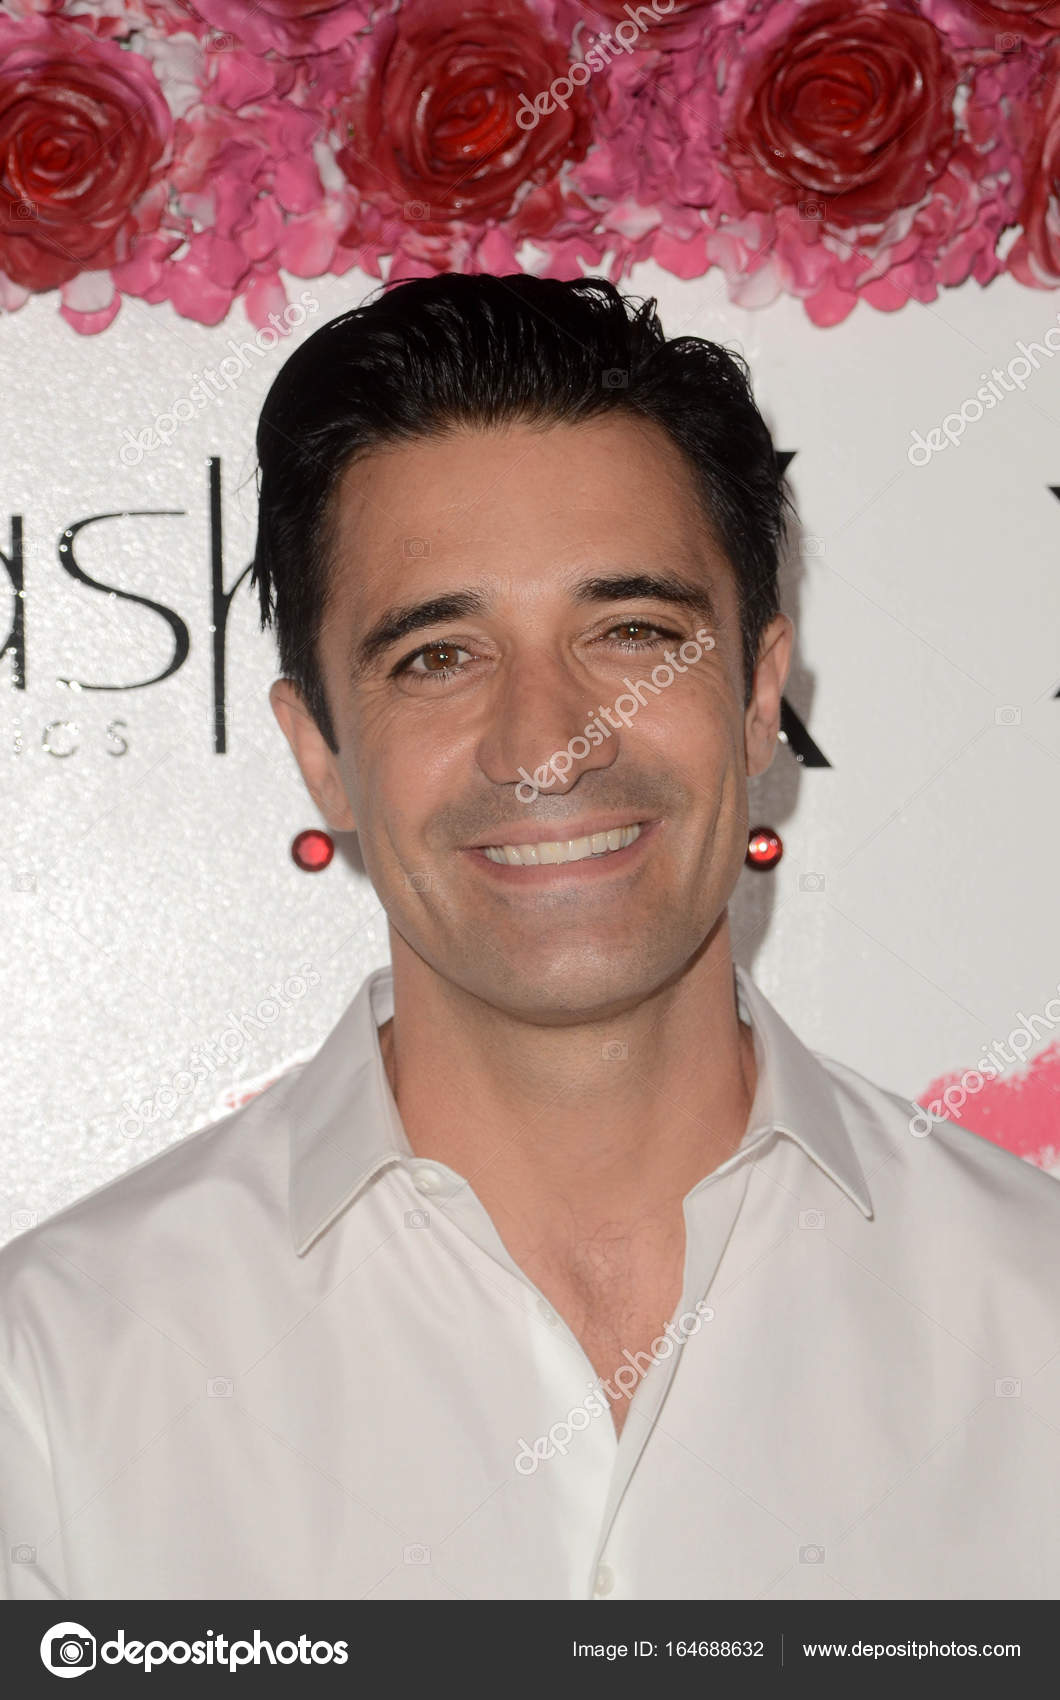 gilles marini movies and tv showsgilles marini 2019, gilles marini instagram, gilles marini sex and the city, gilles marini, gilles marini imdb, gilles marini dancing with the stars, gilles marini height, gilles marini actor, gilles marini wife, gilles marini days of our lives, gilles marini dwts, gilles marini age, gilles marini family, gilles marini net worth, gilles marini movies and tv shows, gilles marini movies, gilles marini wiki, gilles marini switched at birth, gilles marini ultimate beastmaster, gilles marini brothers and sisters